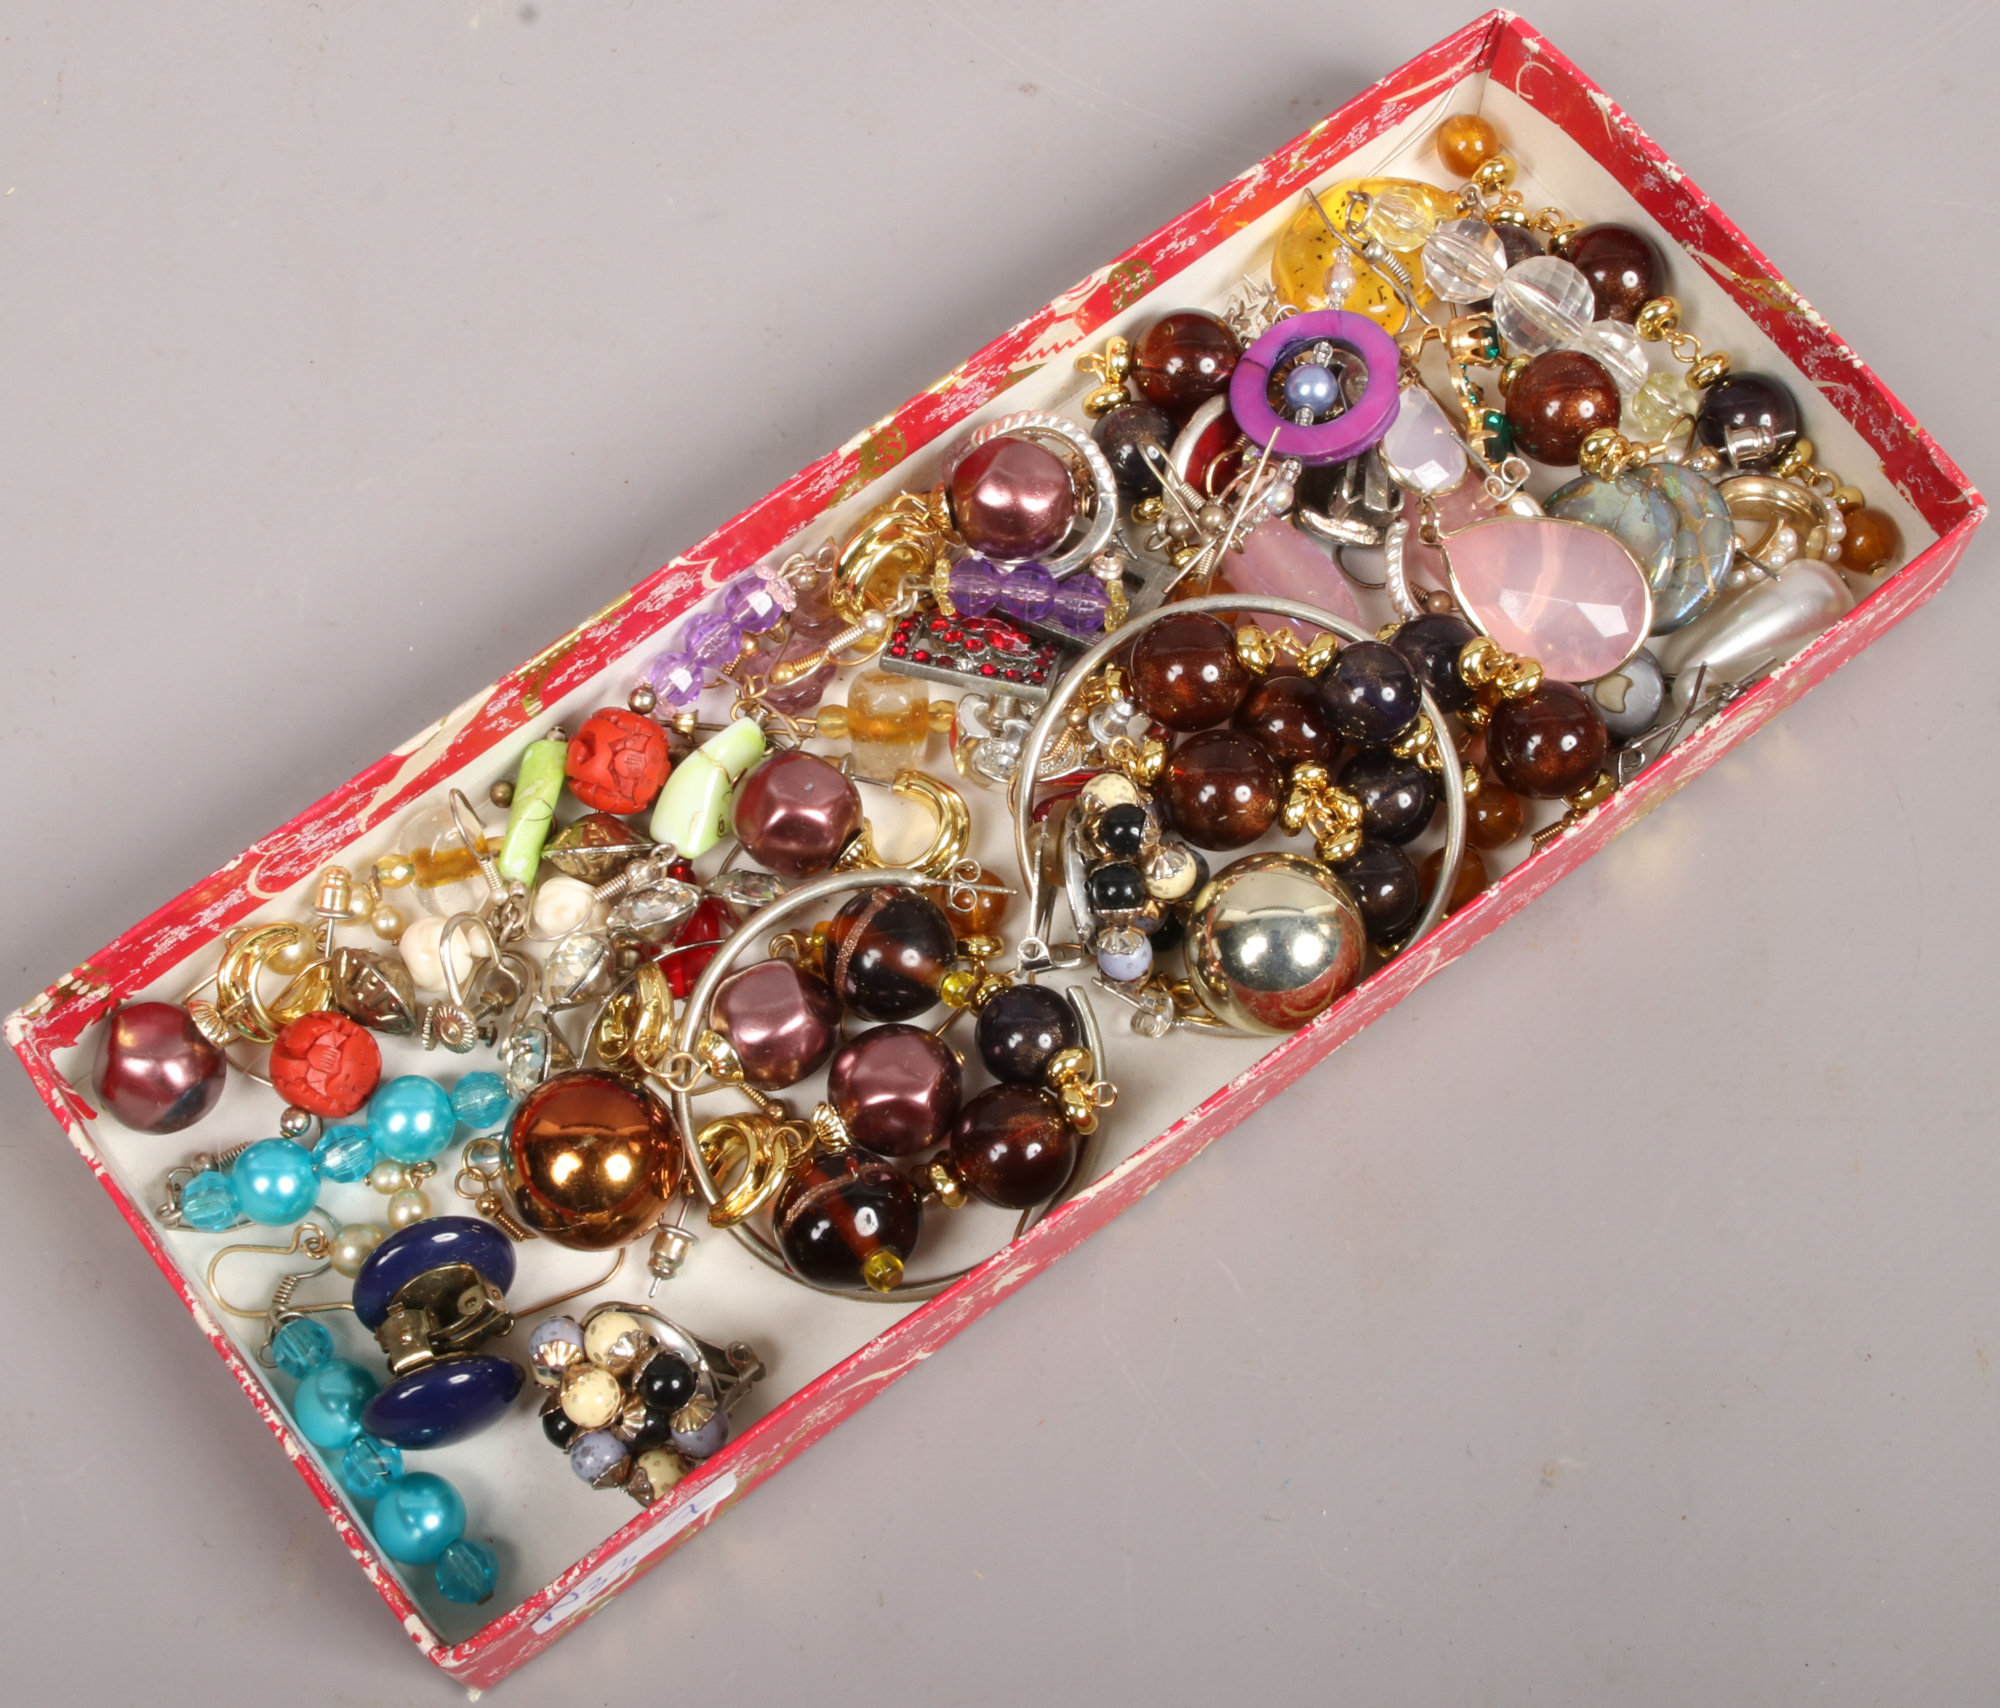 Lot 18 - A tray of costume jewellery earrings including coloured glass and clip on examples.